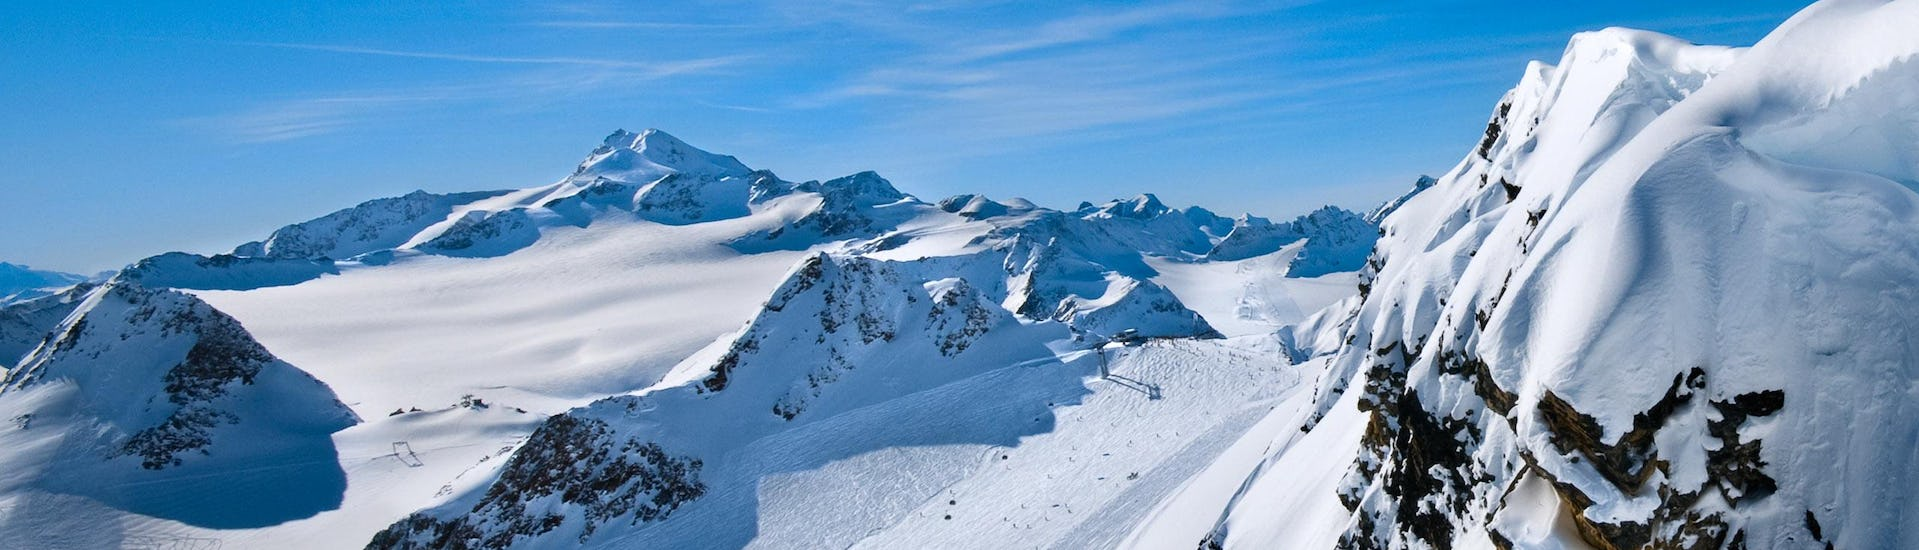 A view of a snowy mountain top in the ski resort of Hintertuxer Gletscher, where ski schools gather to start their ski lessons.